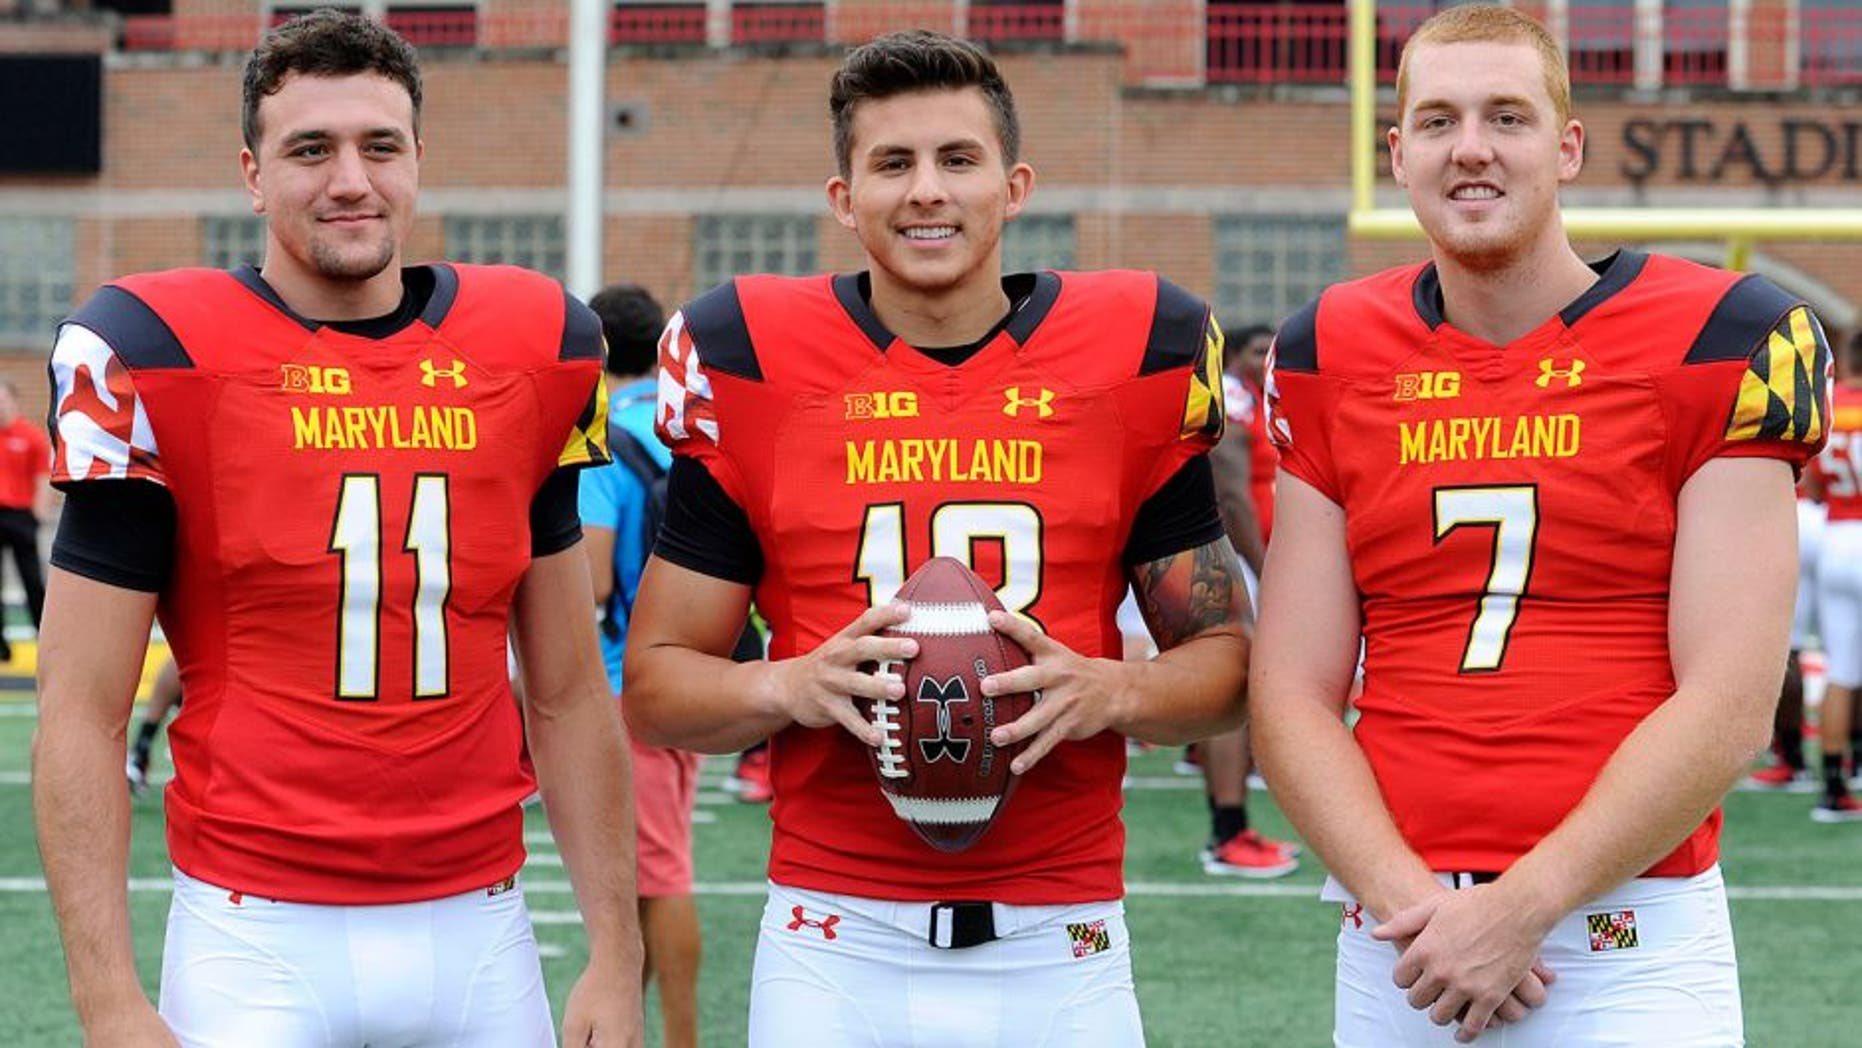 COLLEGE PARK, MD - AUGUST 10: Maryland Terrapins quarterbacks from left, Perry Hills (11), Daxx Garman (18) and Caleb Rowe (7) will compete for the starting position where they are photographed during media day August 10, 2015 in College Park, MD. (Photo by Katherine Frey/The Washington Post via Getty Images)